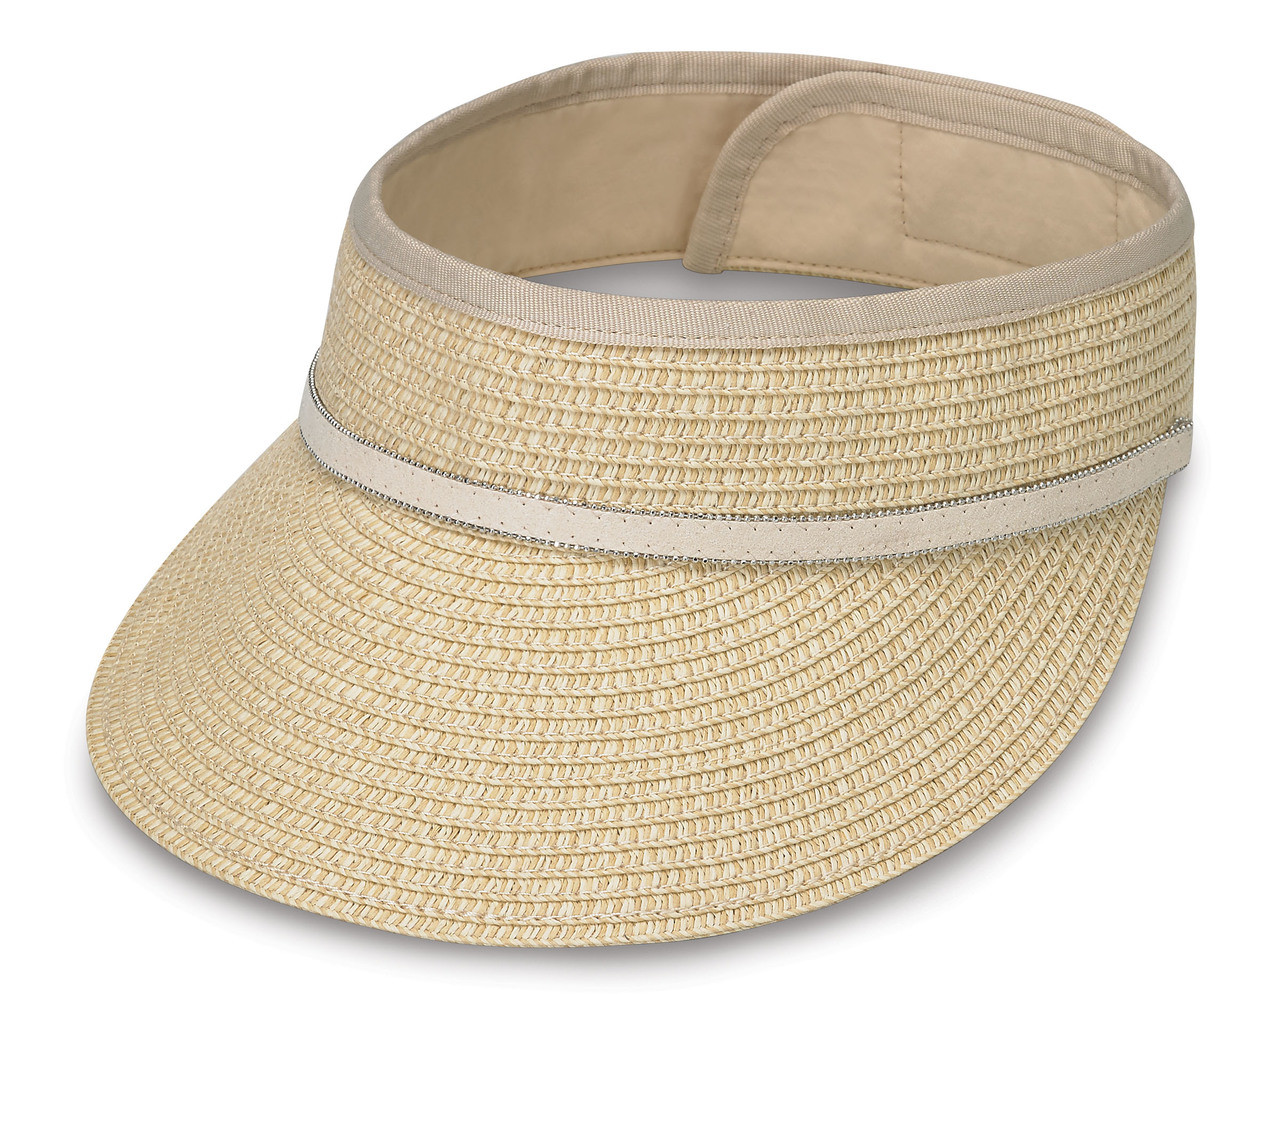 Wallaroo hats bianca visor cap natural 8c313c92522